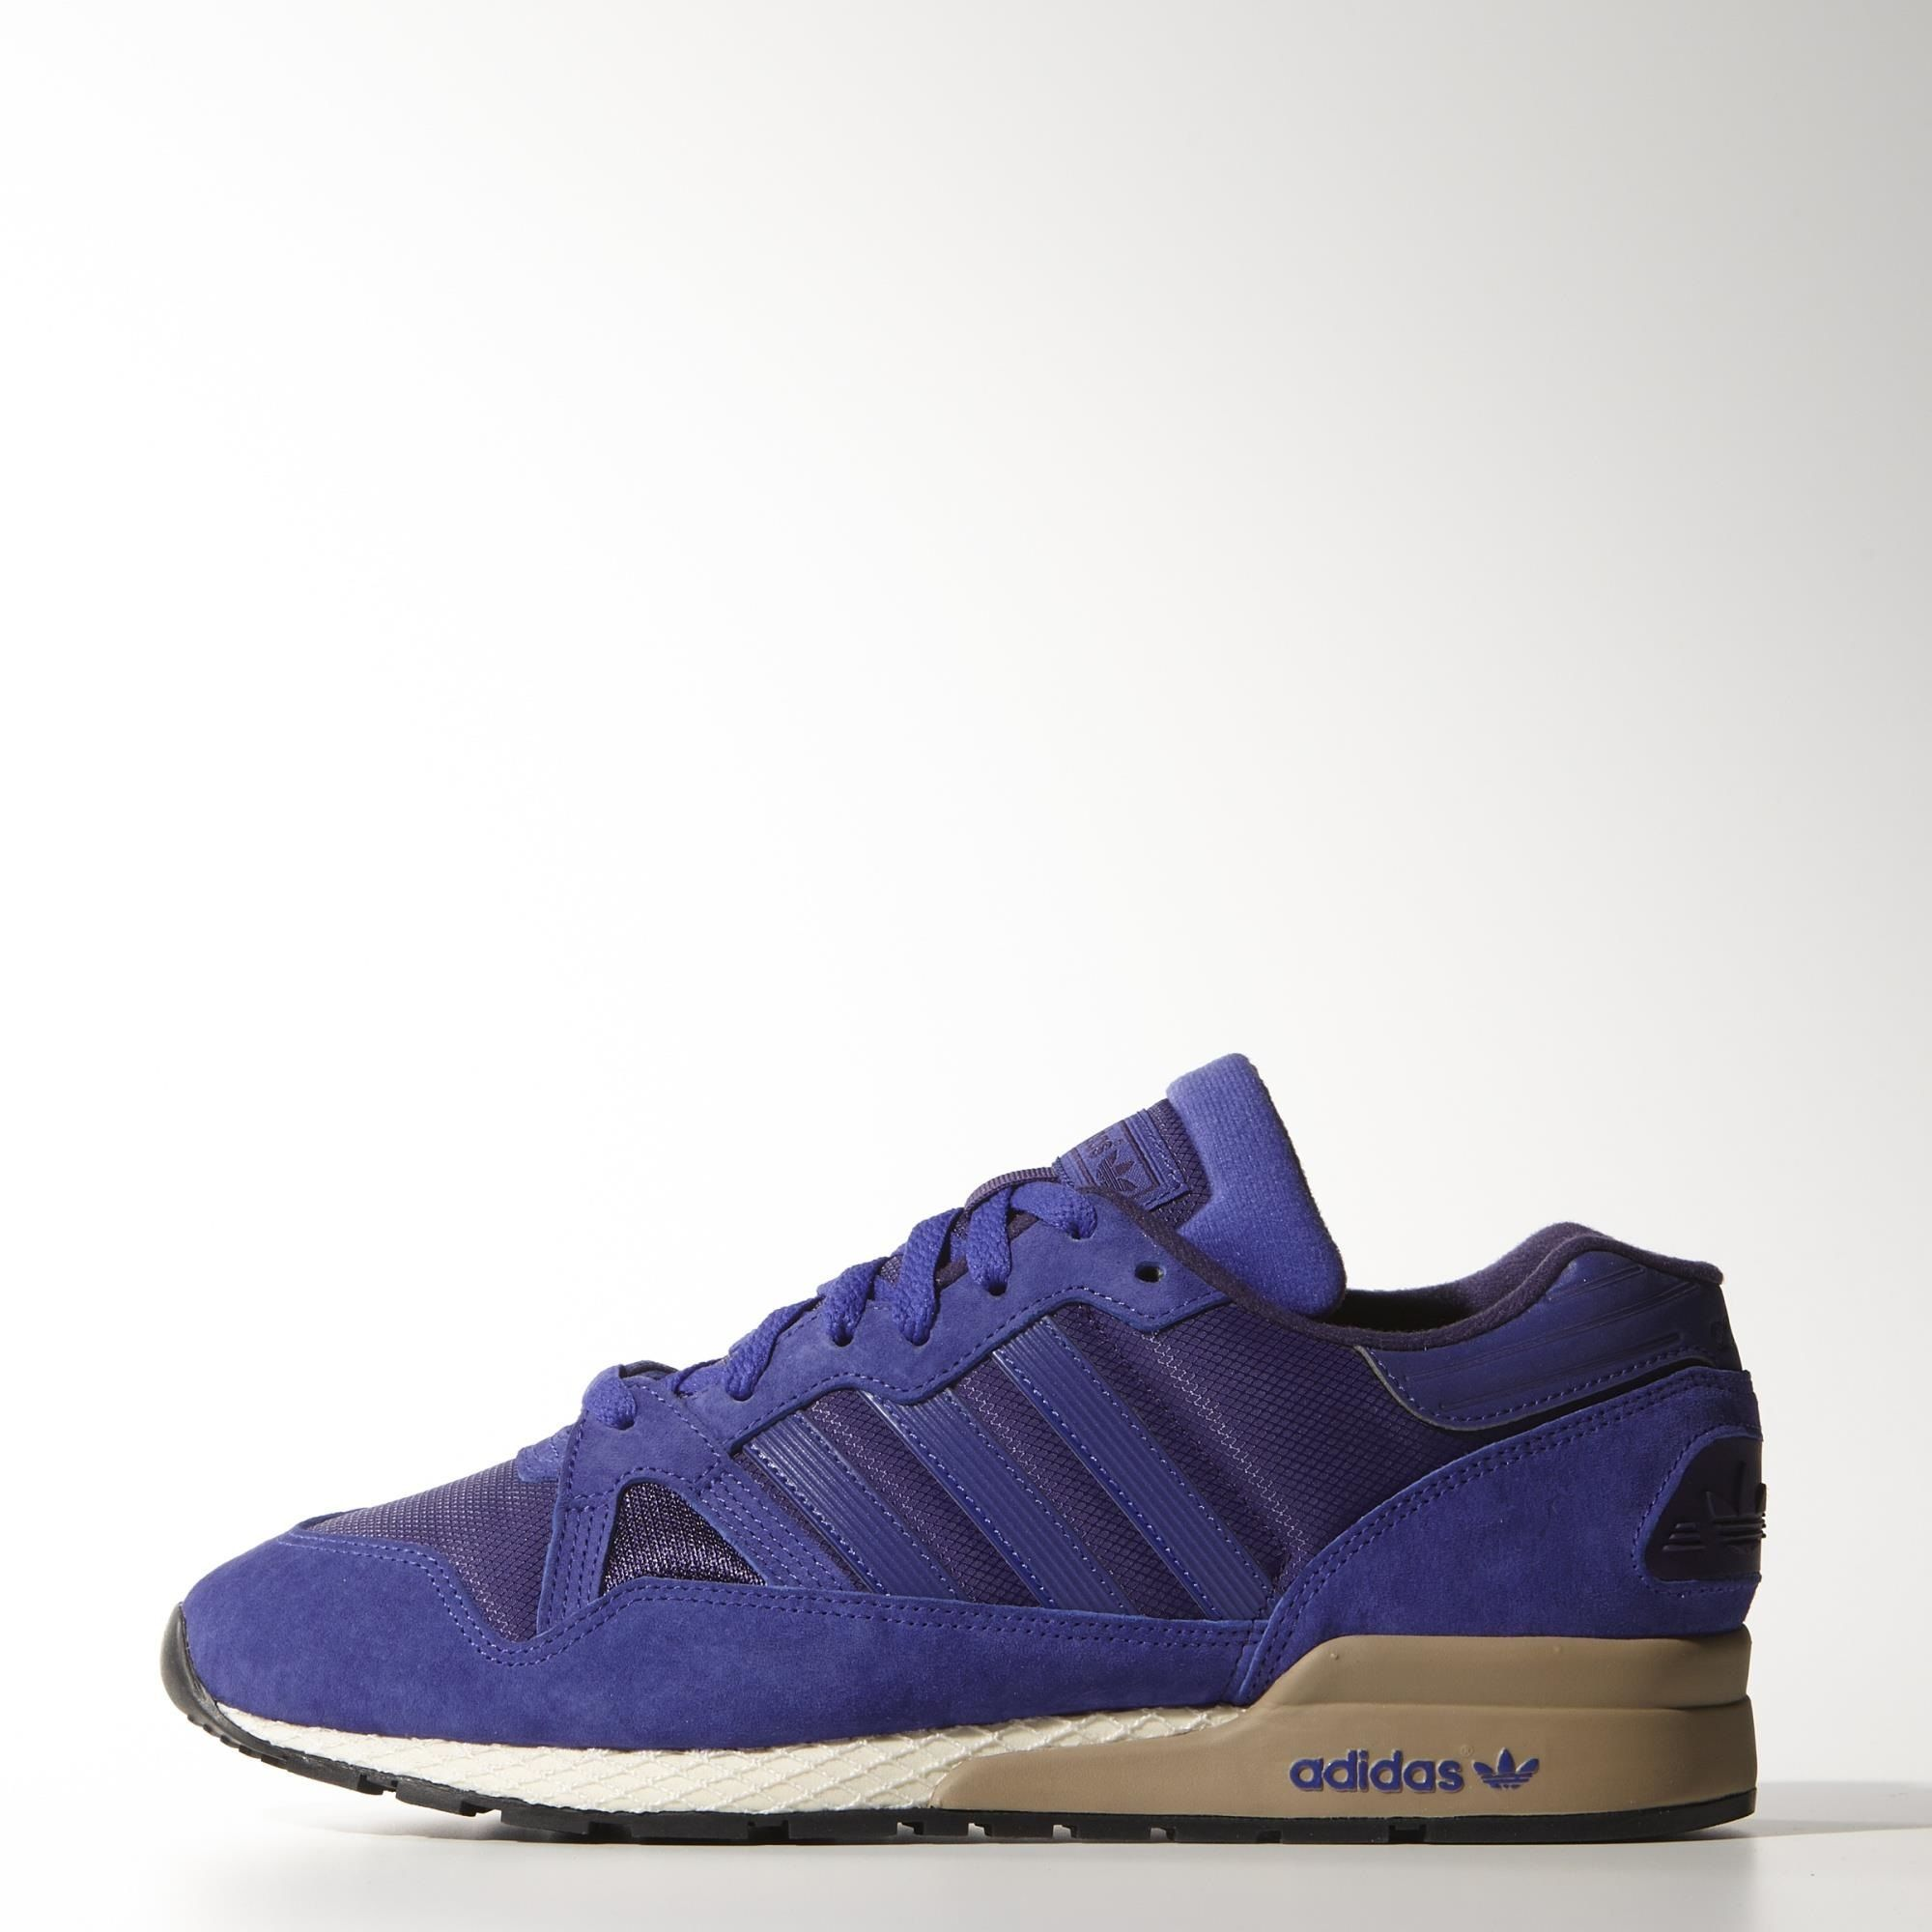 adidas zx 710 homme